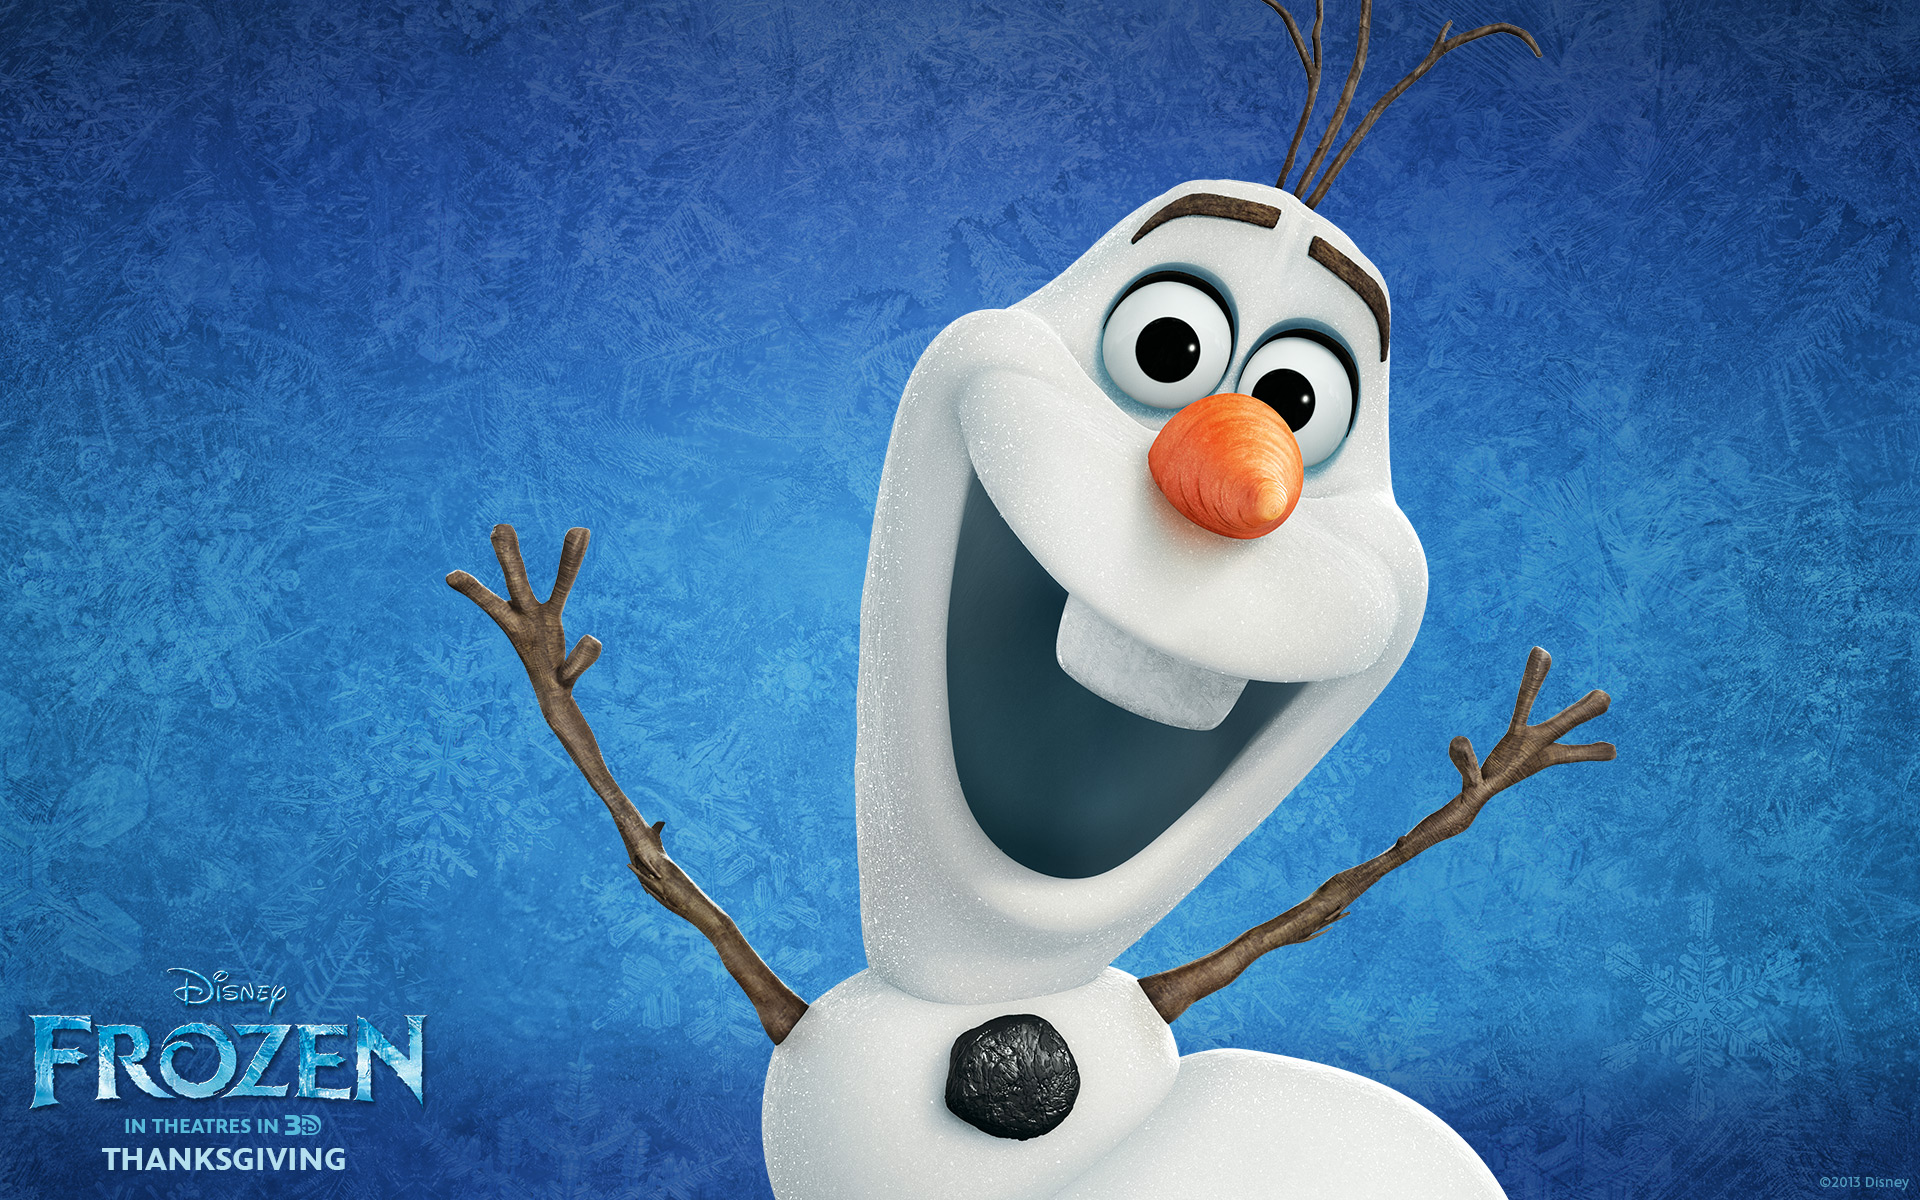 disney s frozen cg animated movie wallpaper image background picture 1920x1200